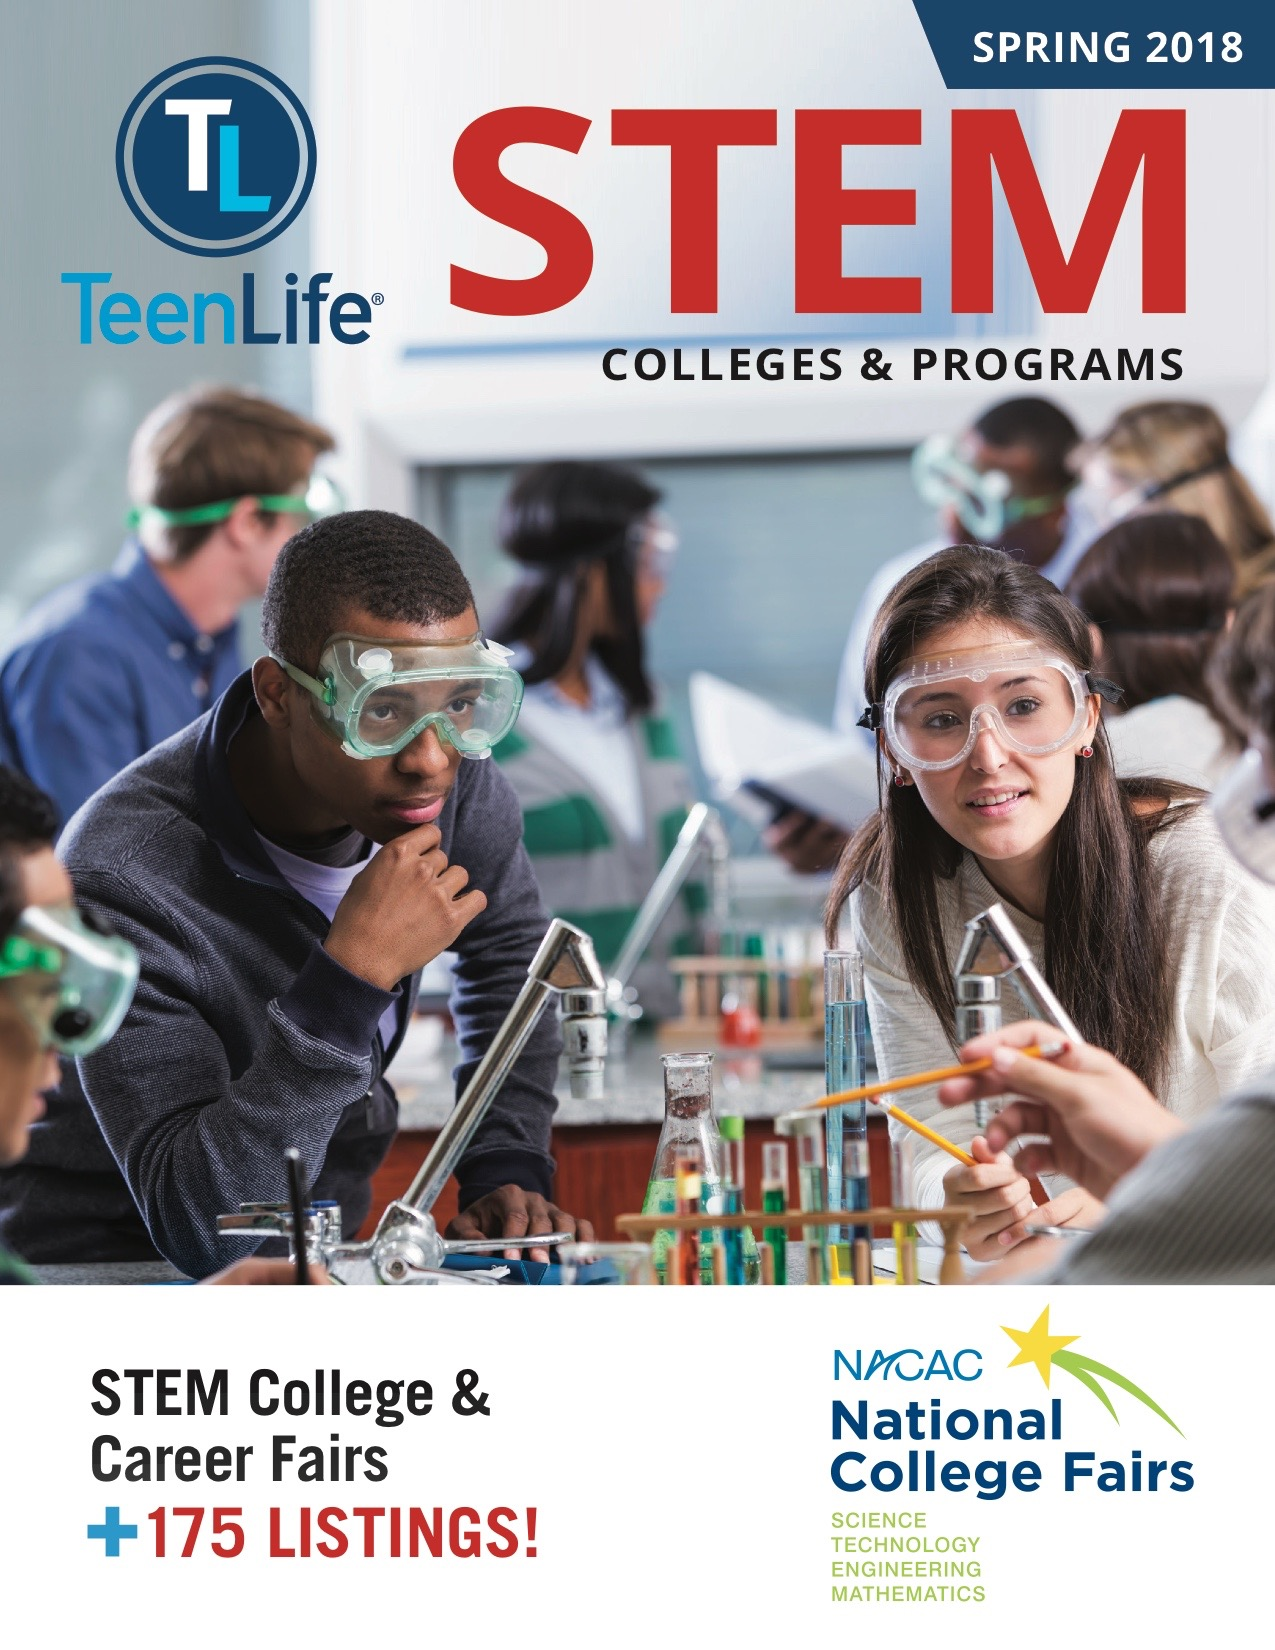 Guide to STEM Colleges & Programs - Spring 2018